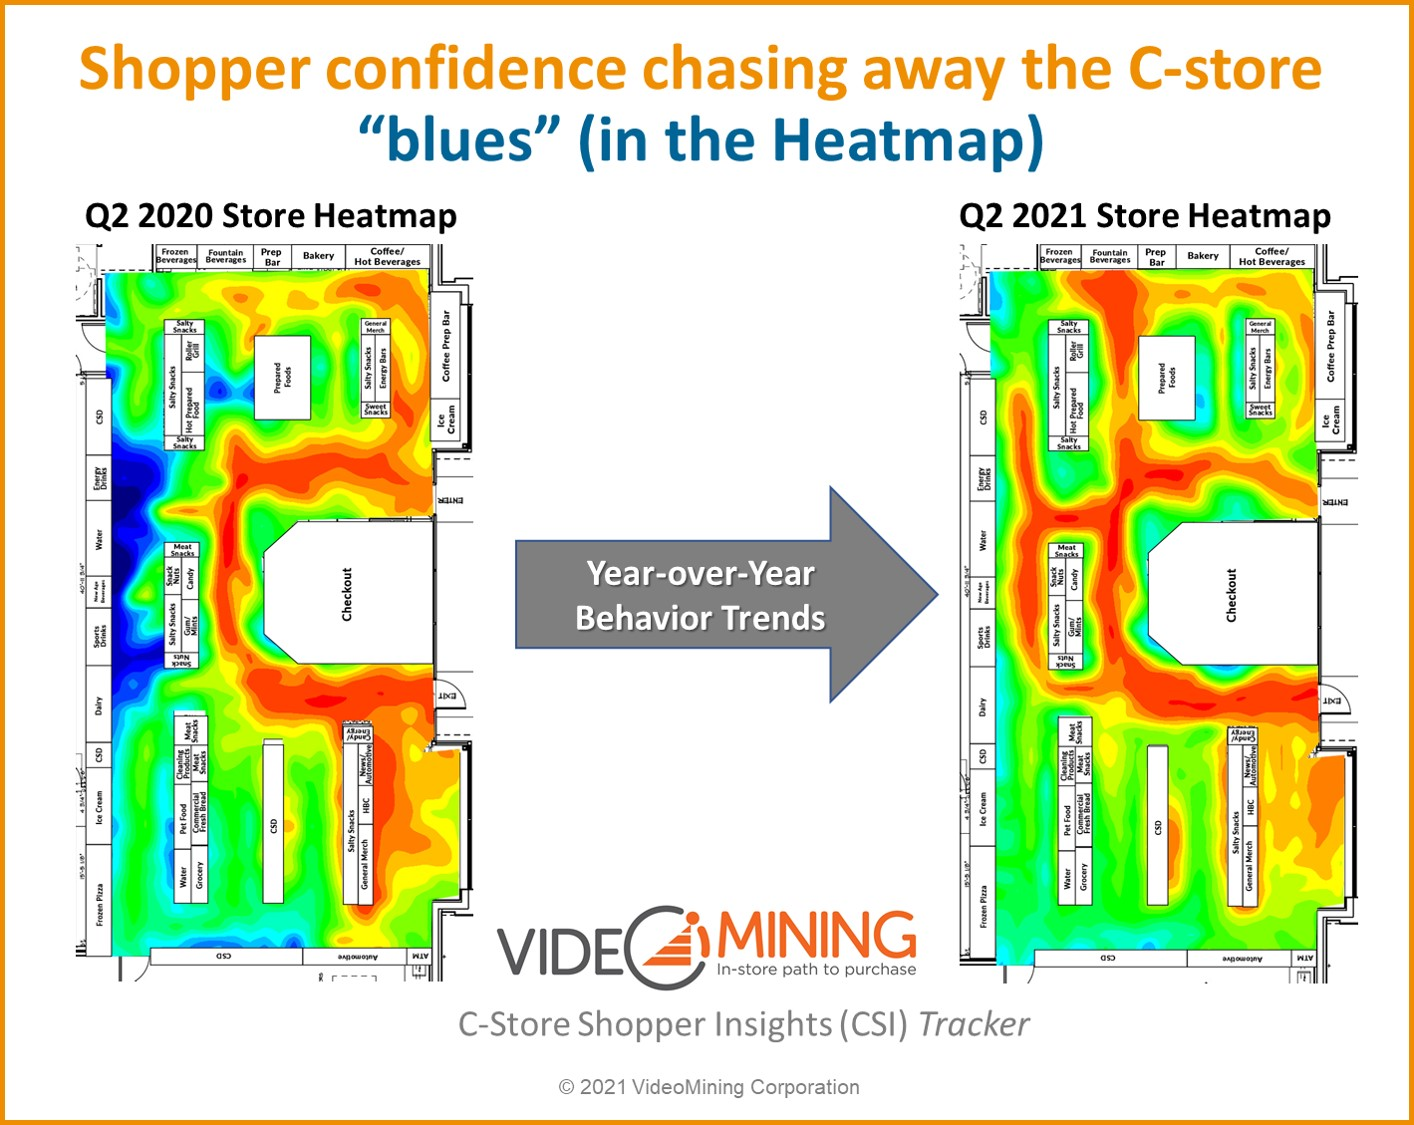 Heatmap trend points to increased shopper confidence